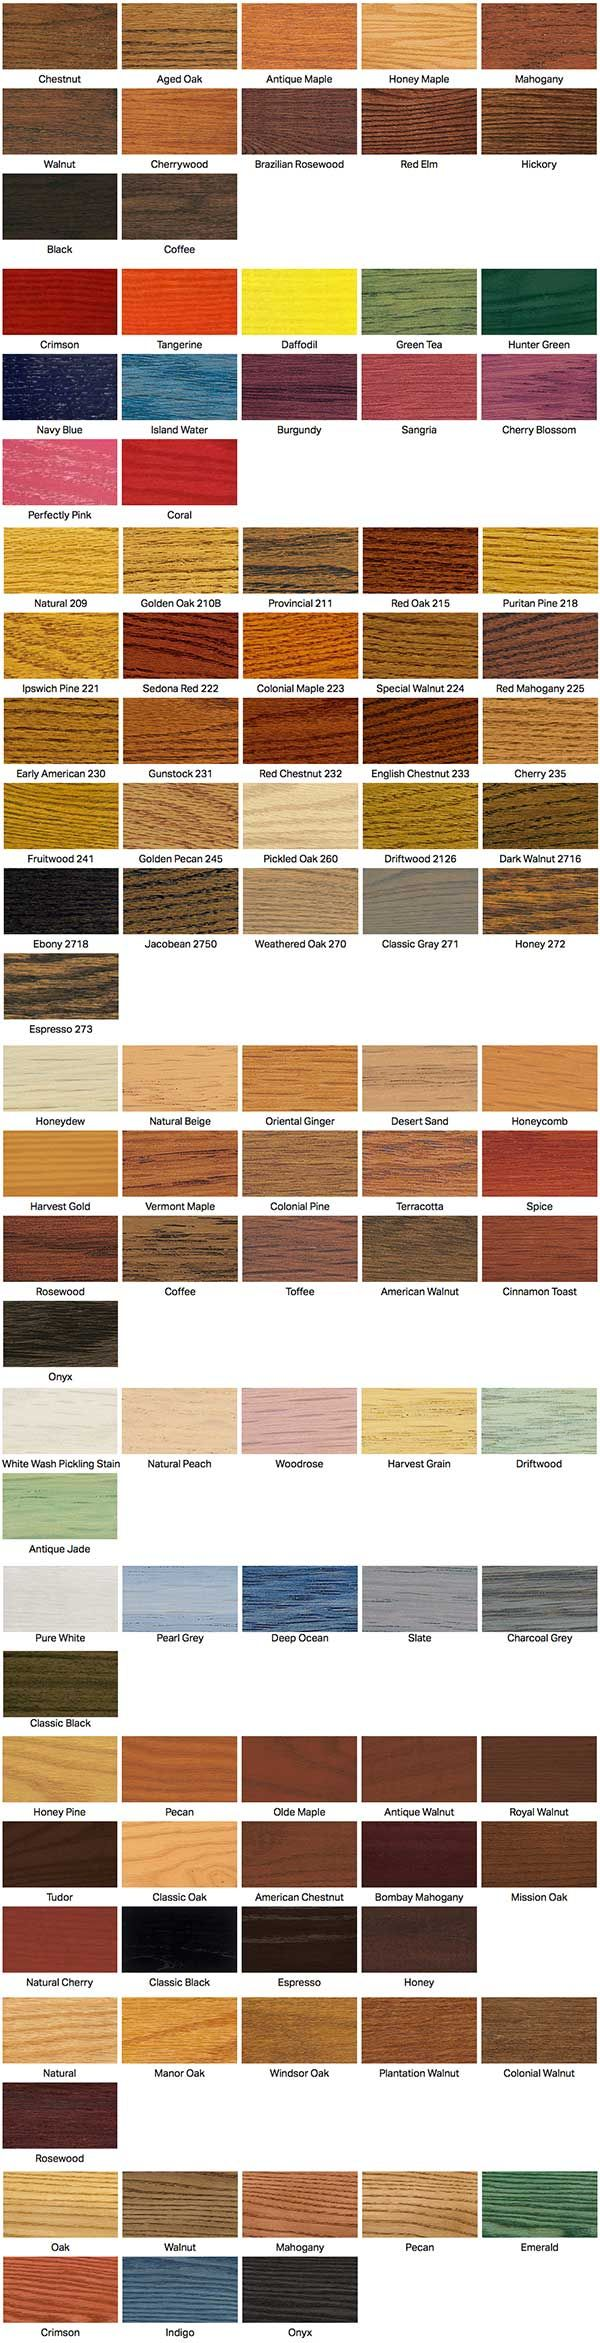 Wood floor stain colors from minwax by indianapolis for Hardwood floor colors